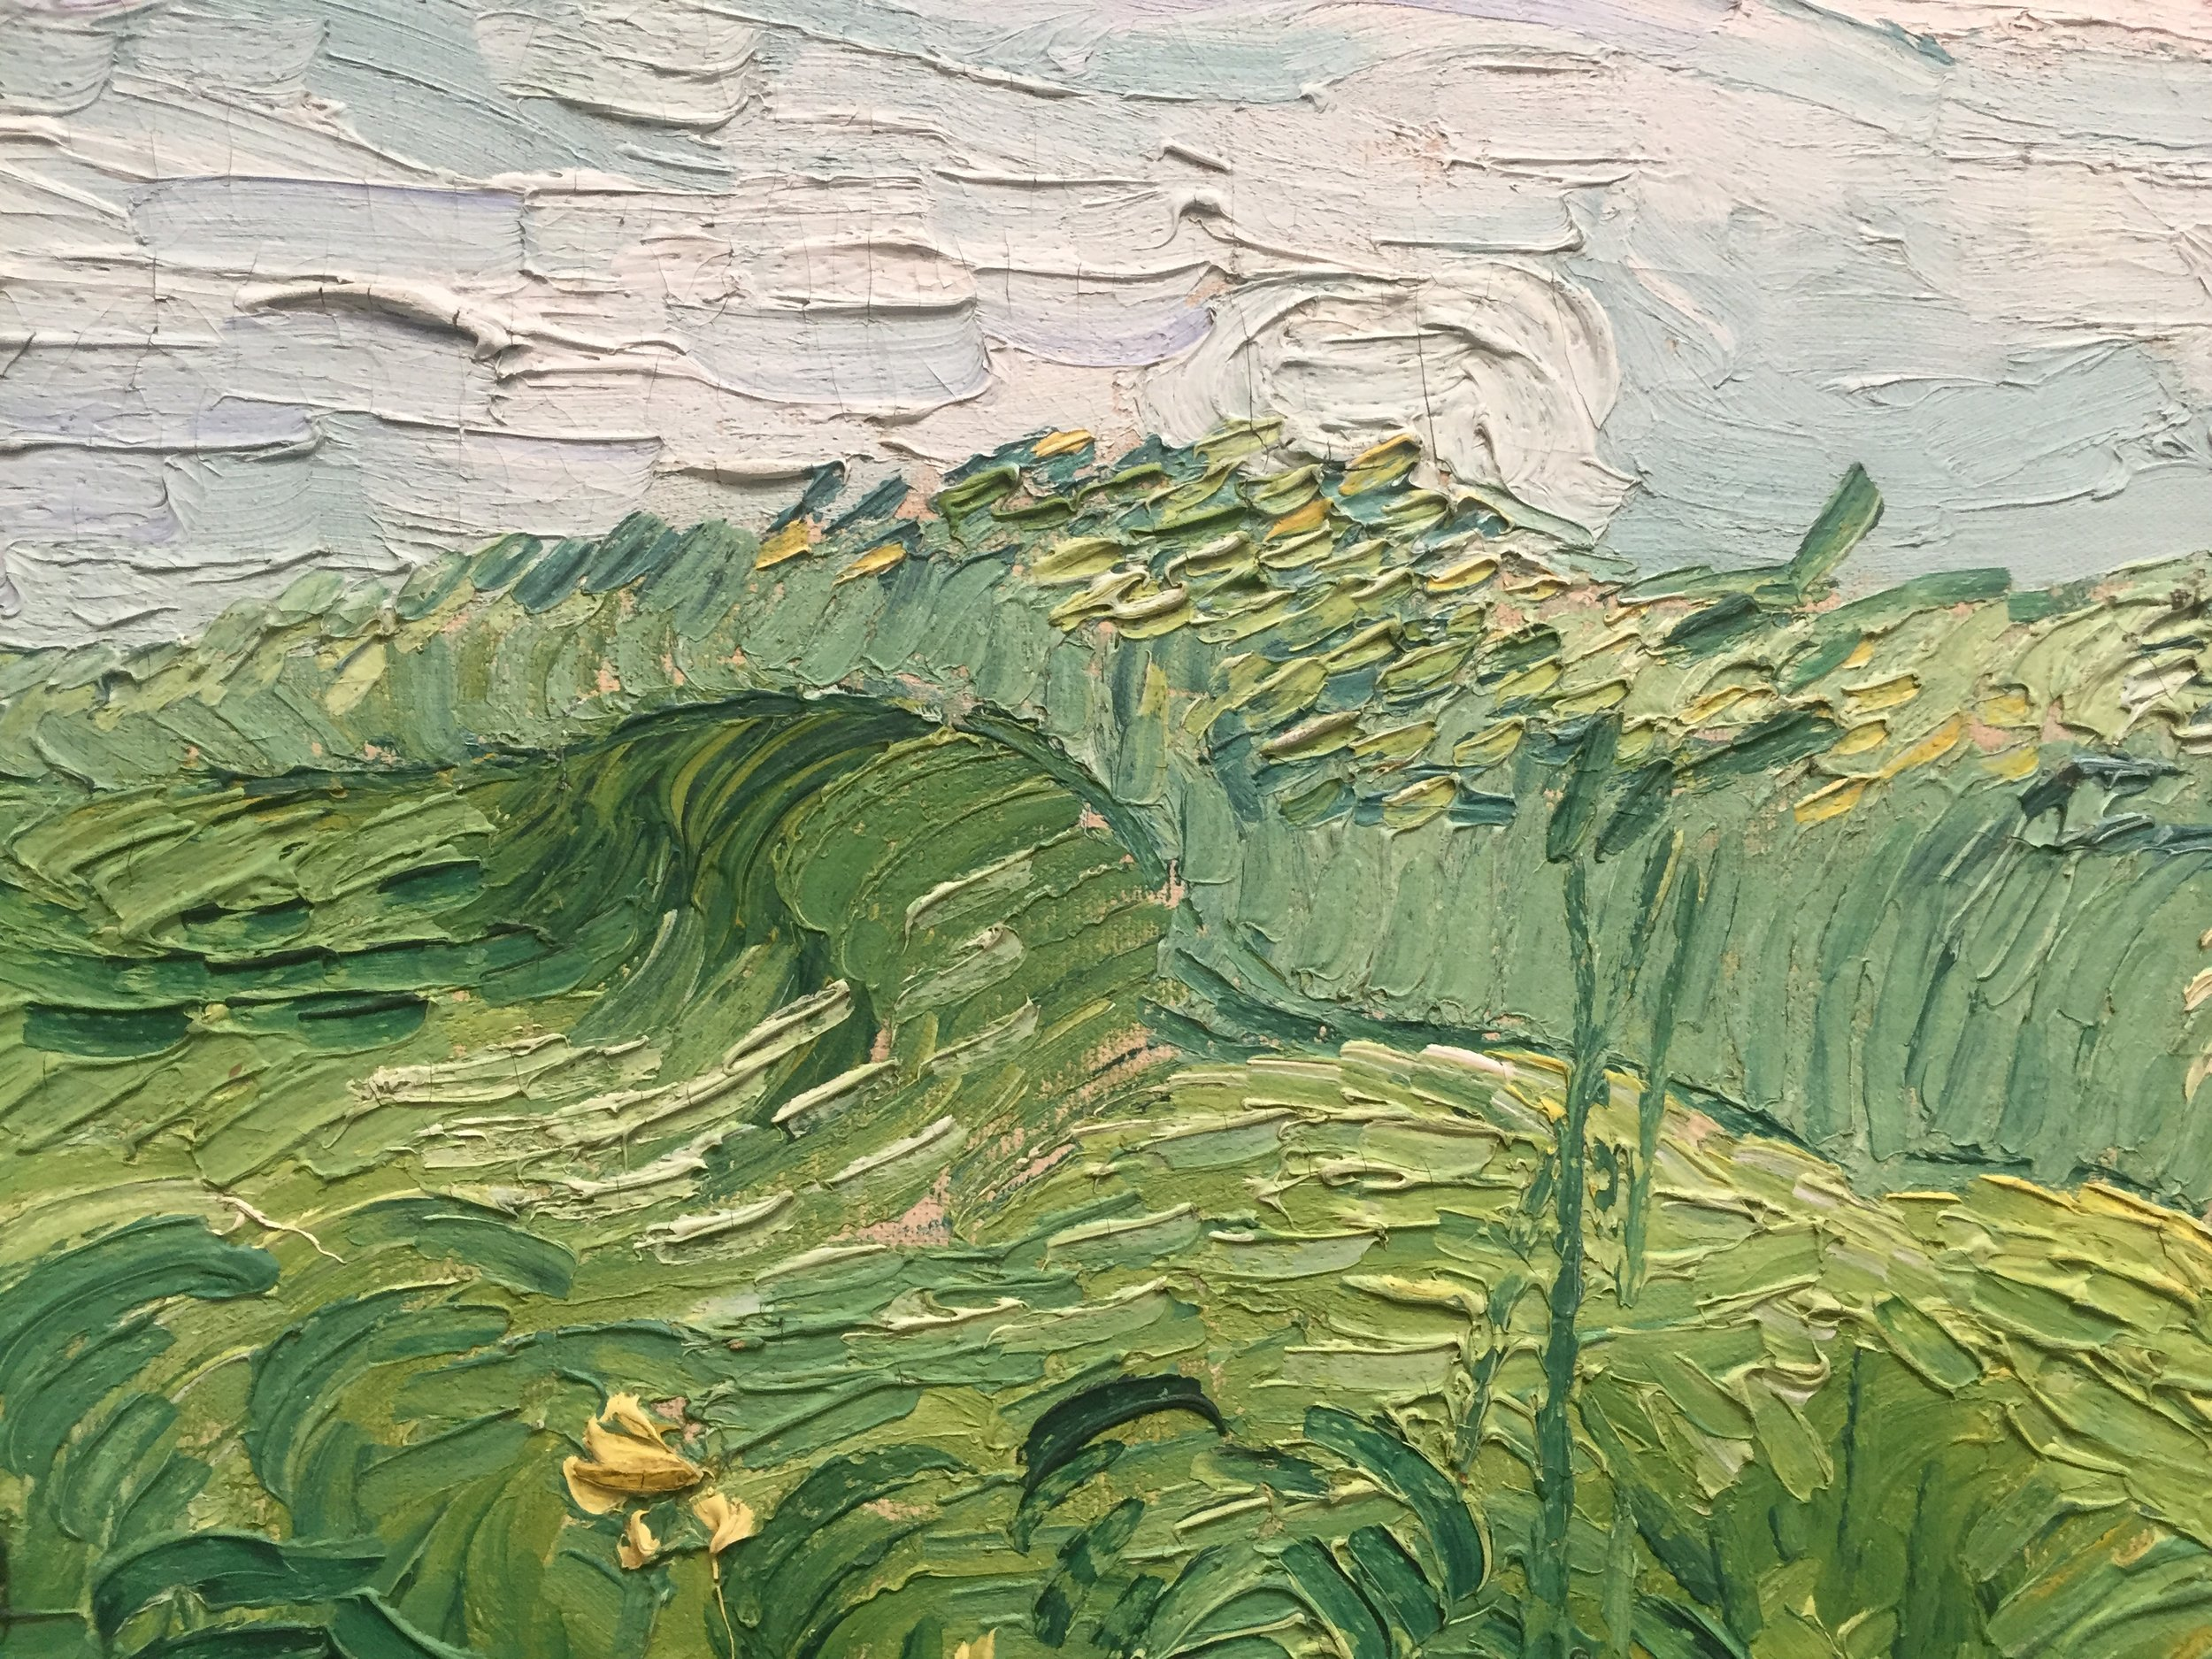 van gogh up close.JPG